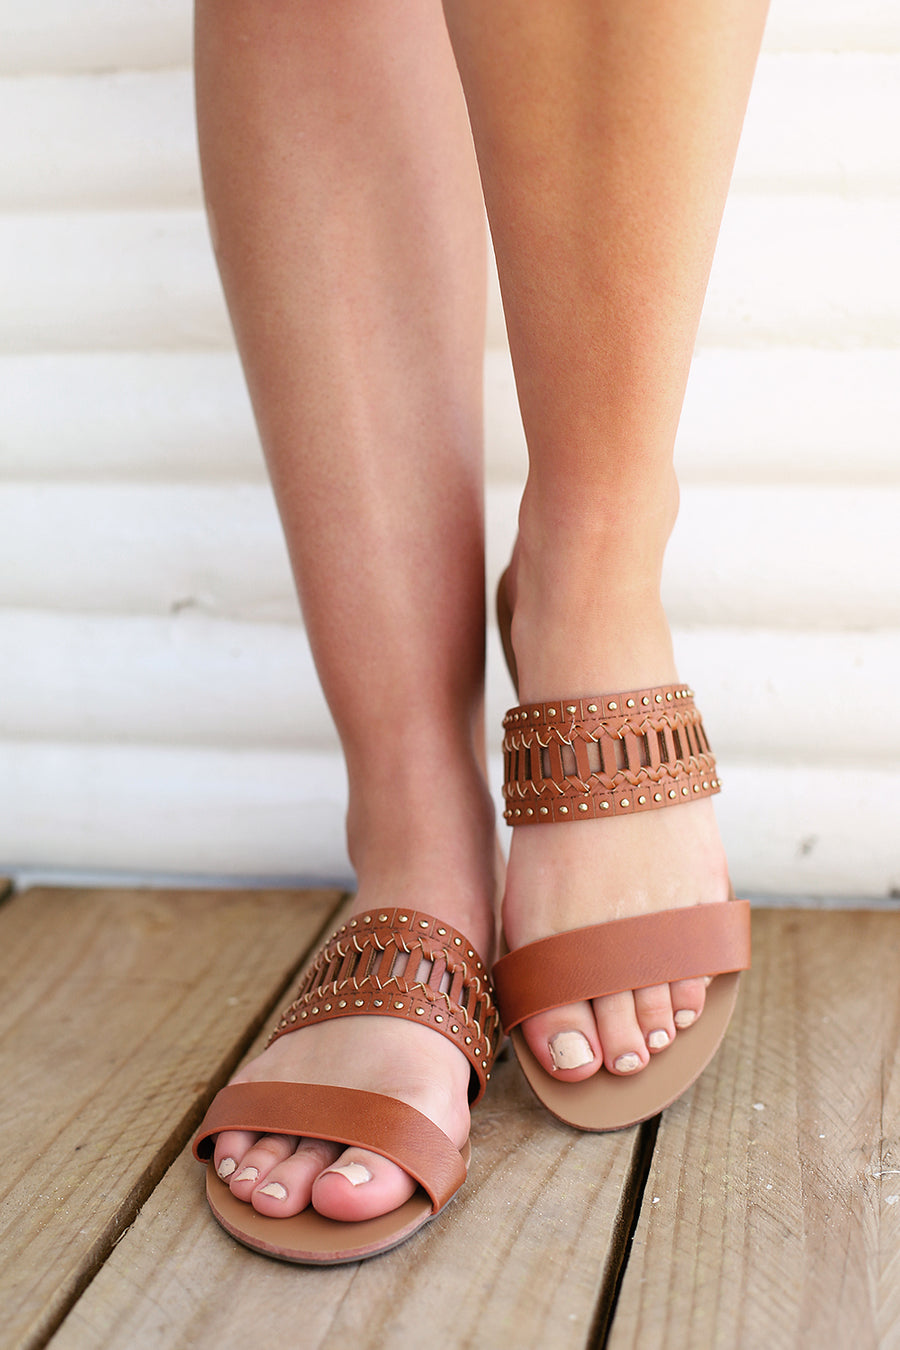 Bali Sandals - Tan Kid - By Verali - HER Empire Fashion Boutique Terrigal & Online